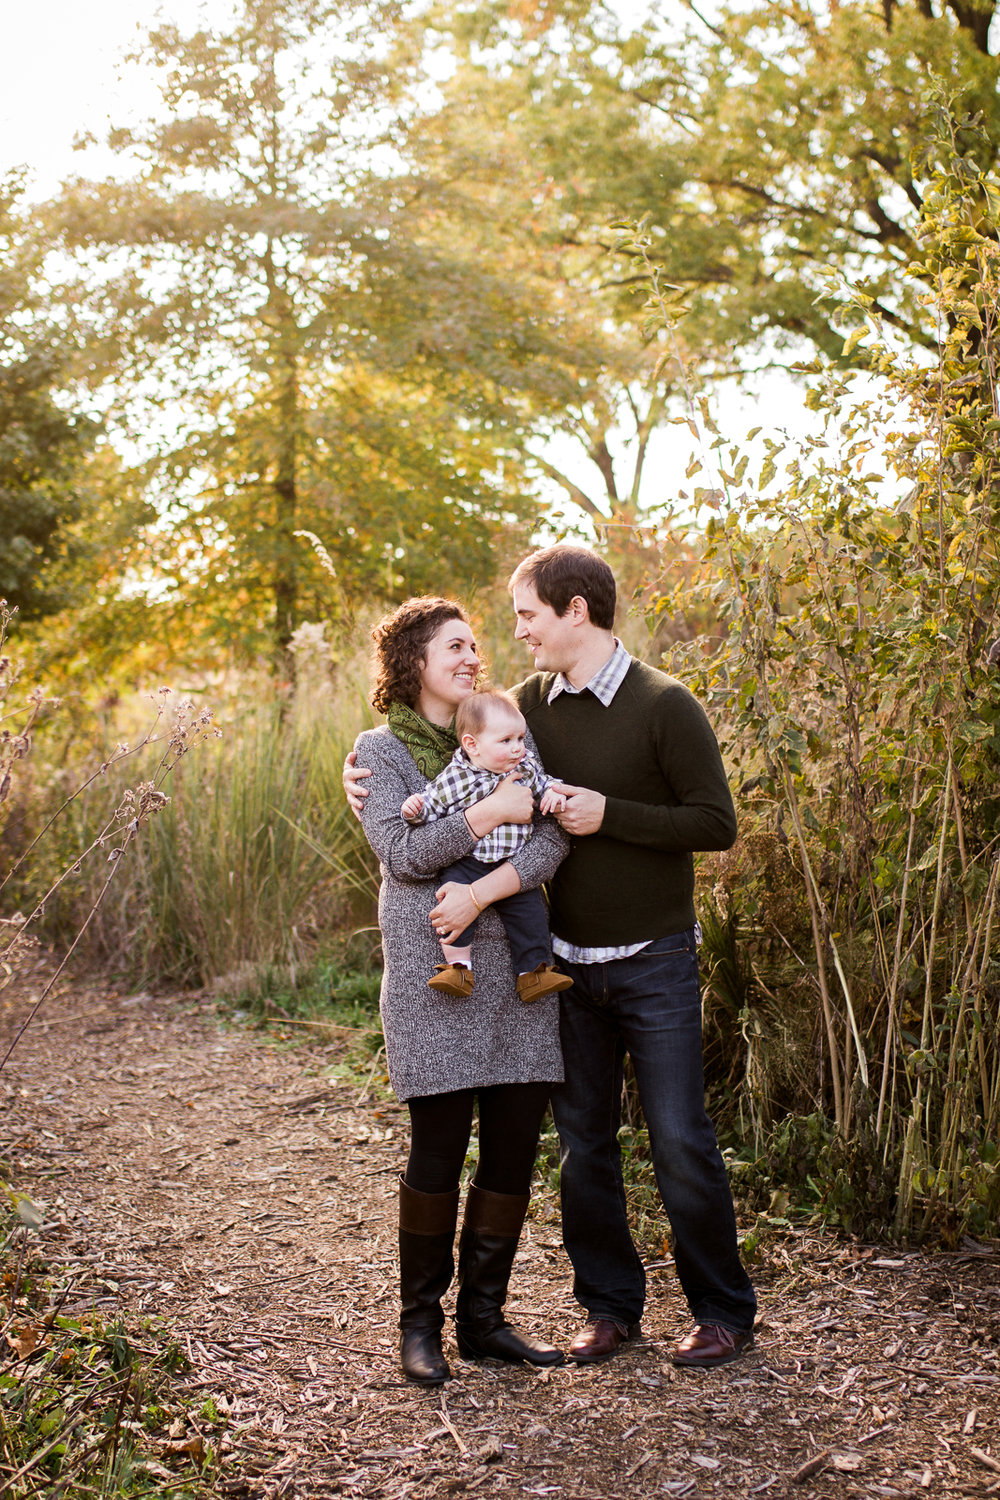 Family photo in the autum fields, Kansas City fall family photos, candid family portrait